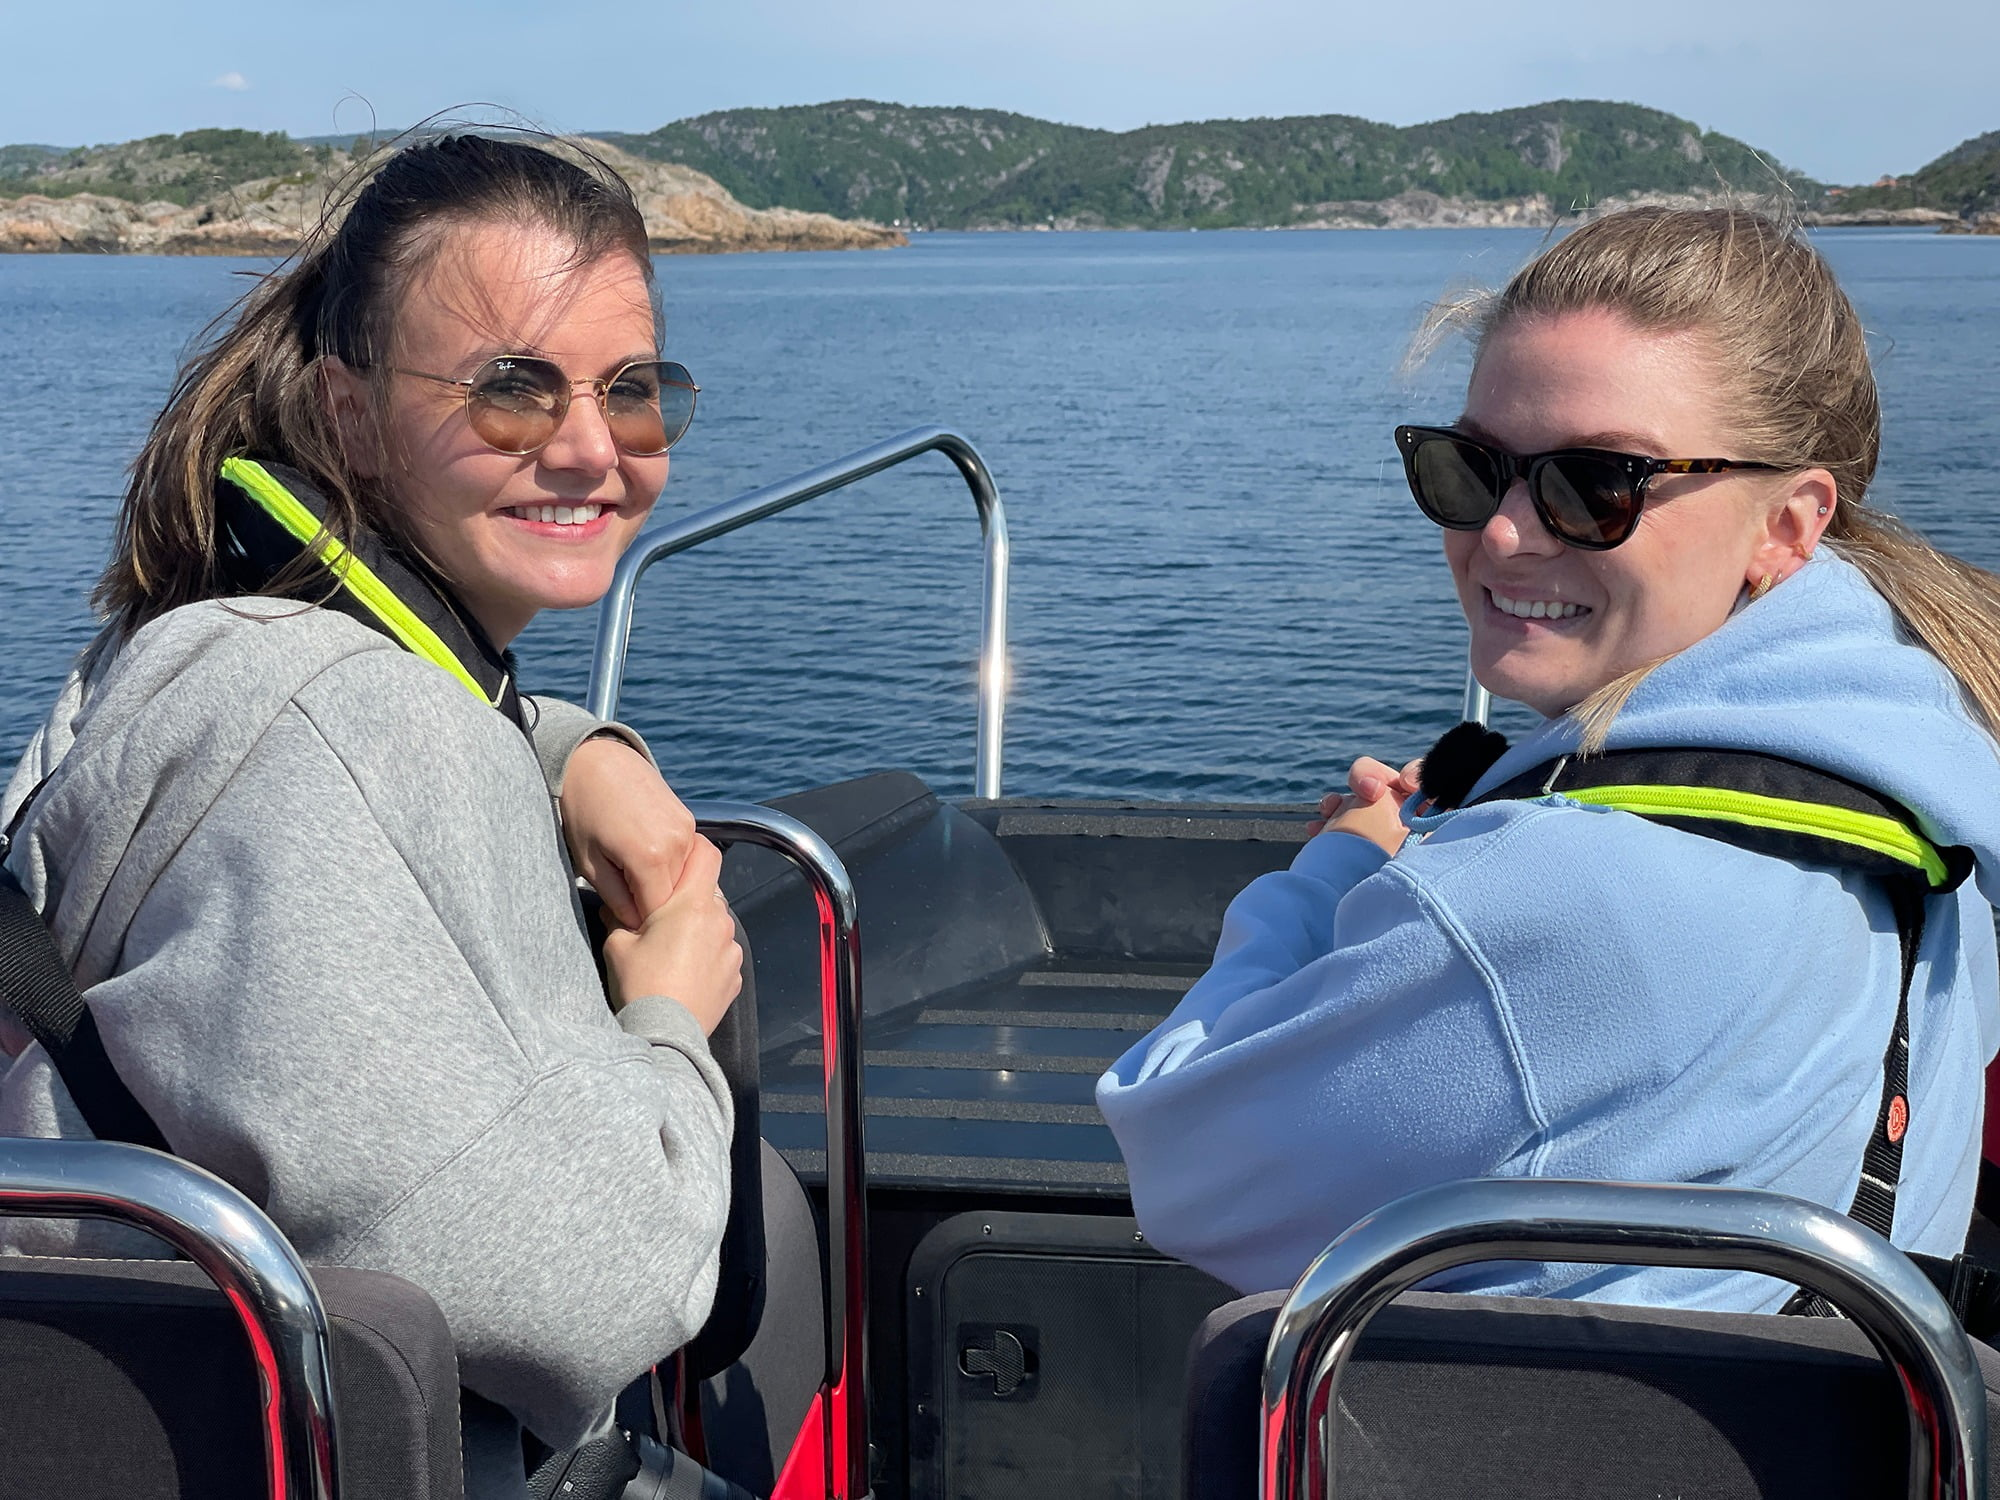 Boats and boating--Equipment and supplies, Water, Smile, Glasses, Sky, Sunglasses, Watercraft, Lake, Travel, Goggles